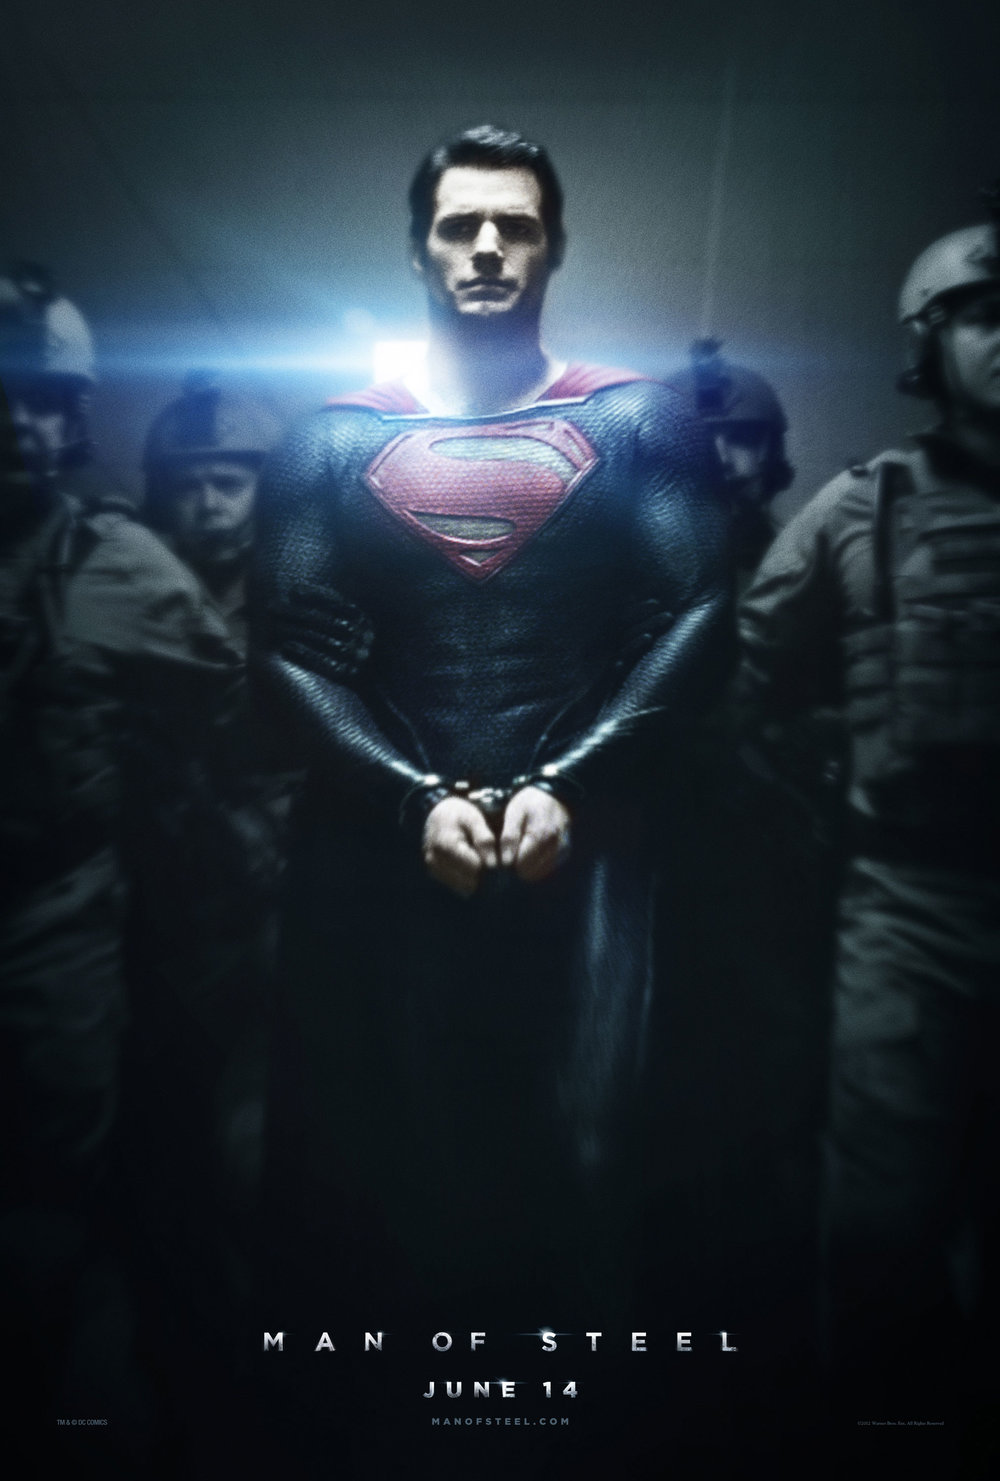 man-of-steel-poster-opt.jpg